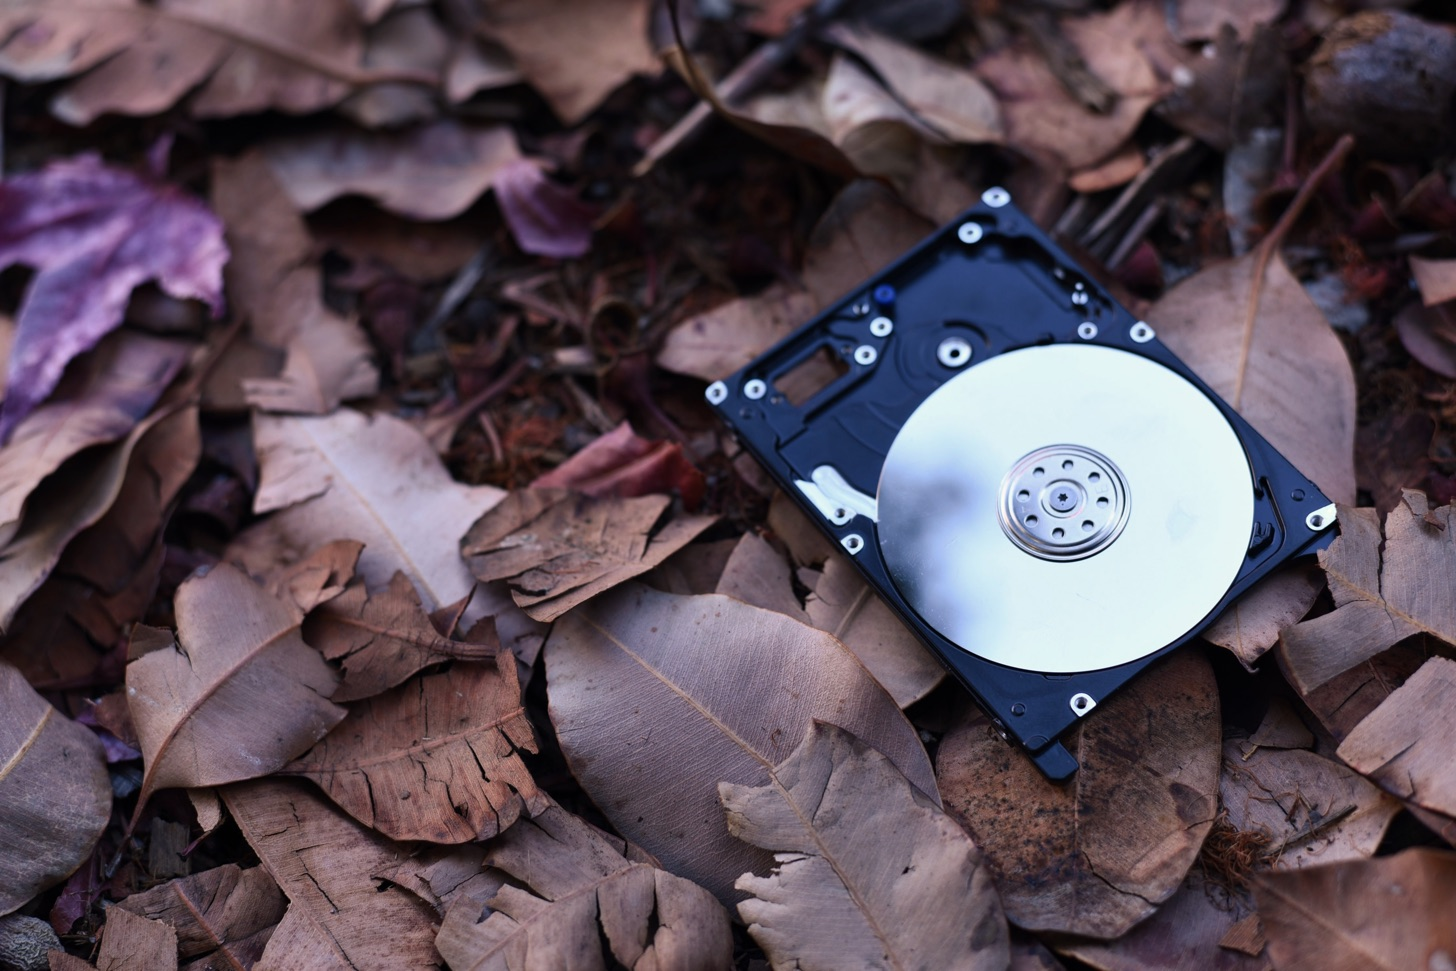 A hard disk lying on some leaves.